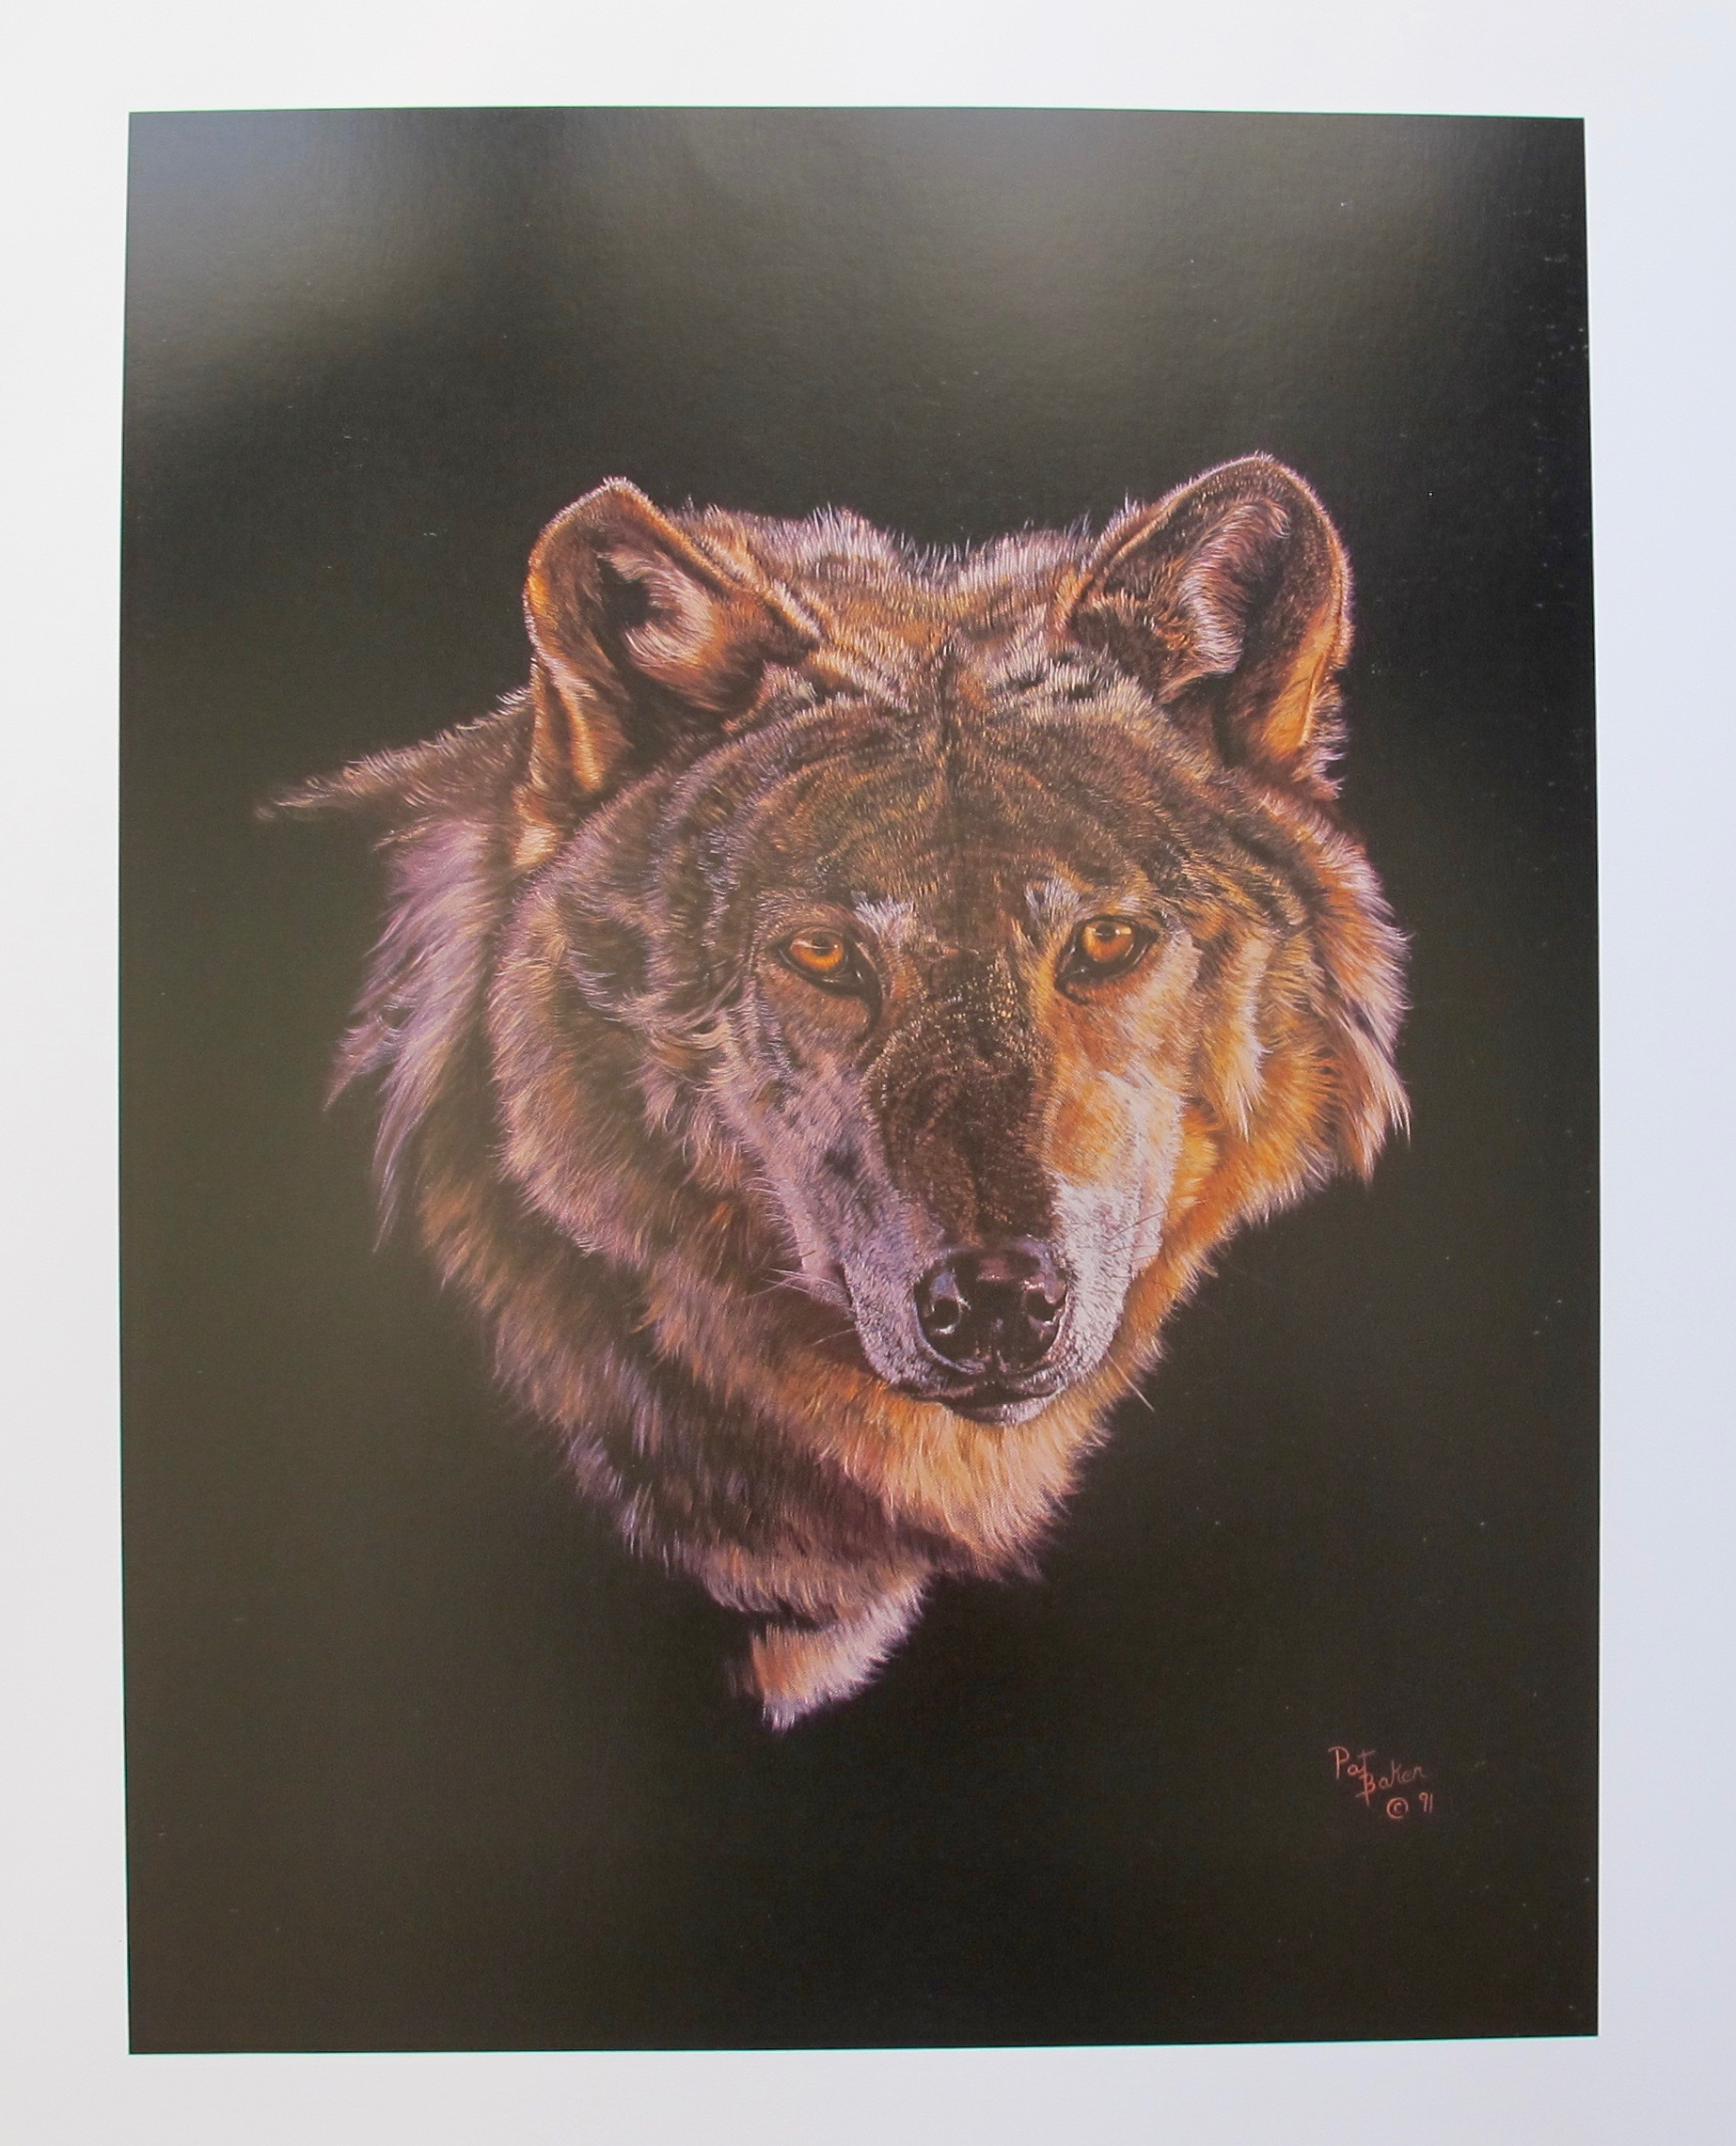 PAT BAKER Plate Signed Limited Edition Lithograph GREY WOLF